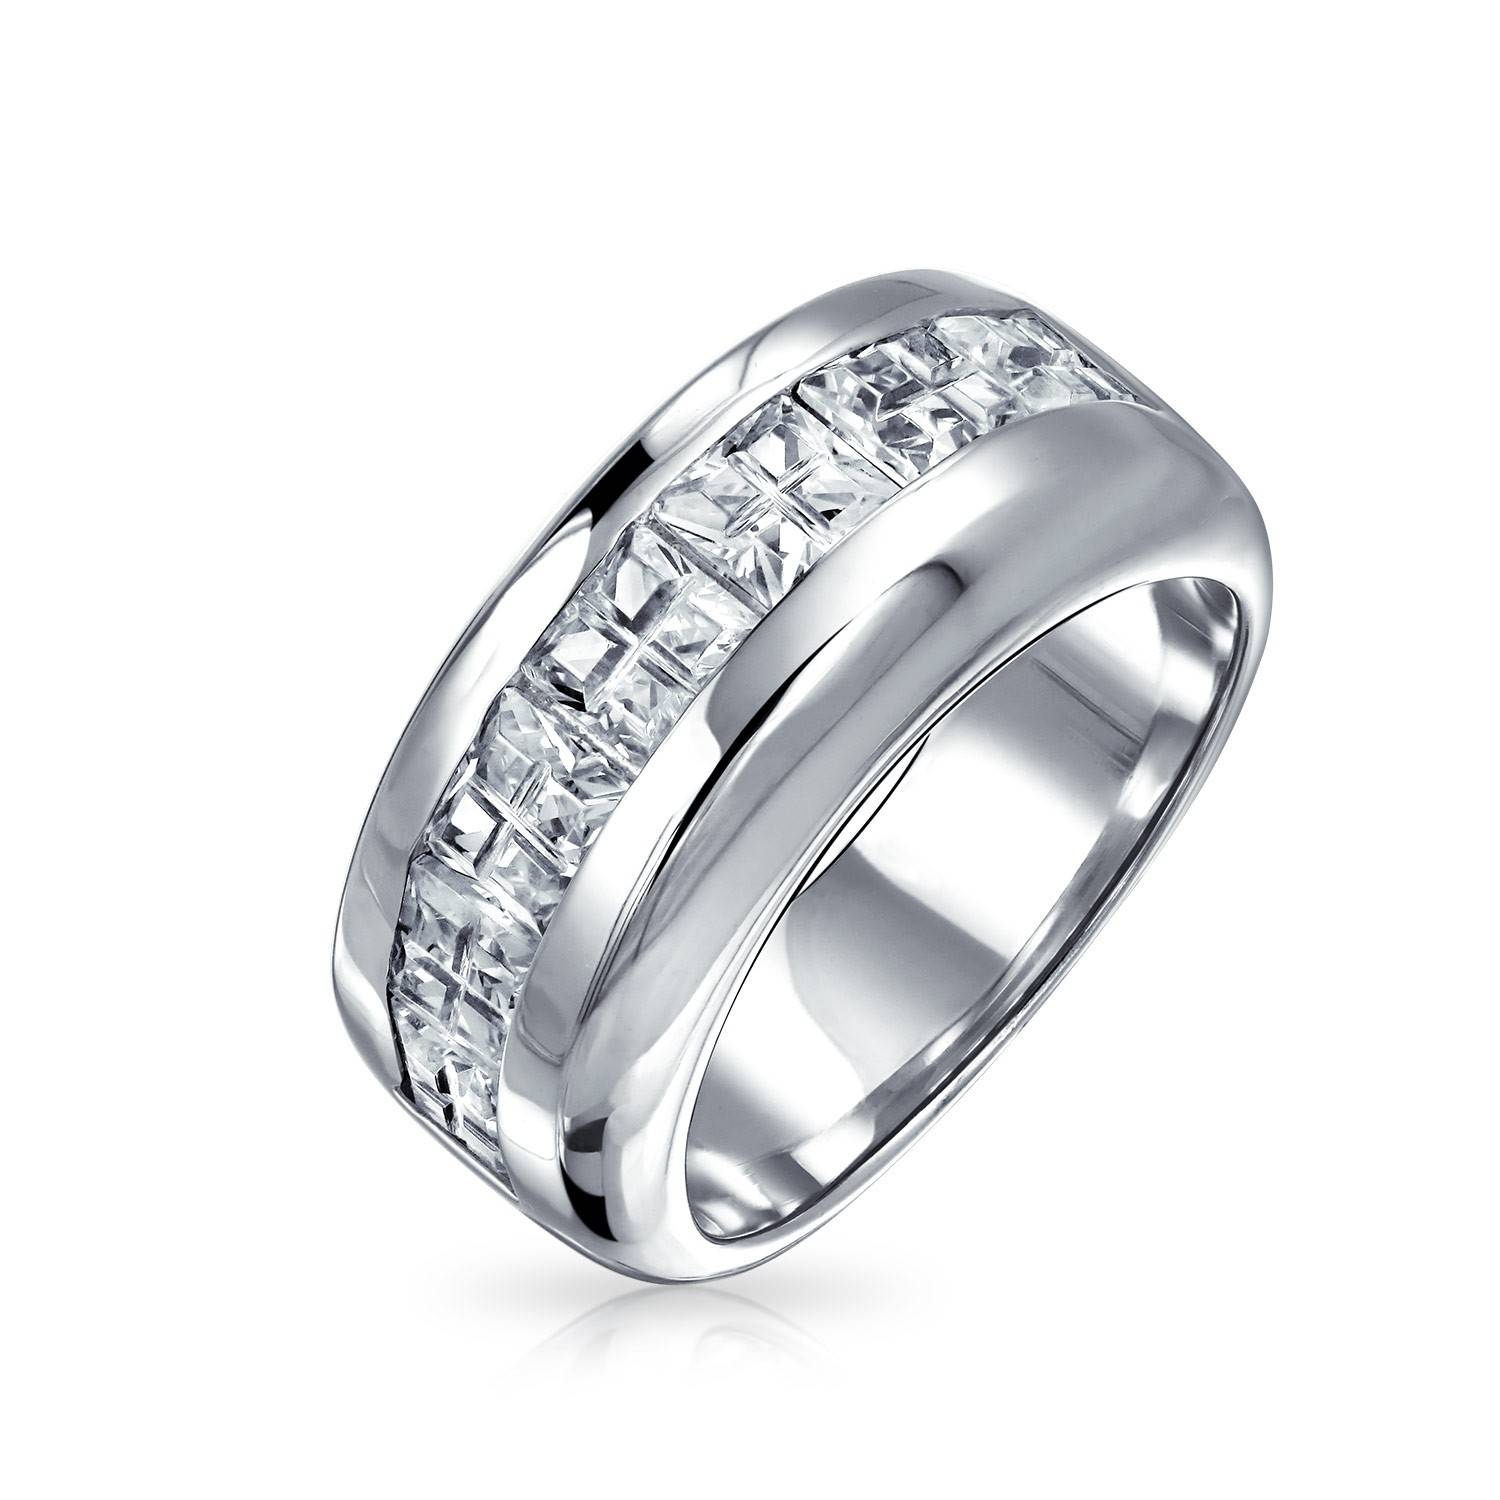 Sterling Silver Wedding Band Invisible Cut Cz Unisex Mens Ring Intended For Mens Sterling Wedding Bands (View 2 of 15)